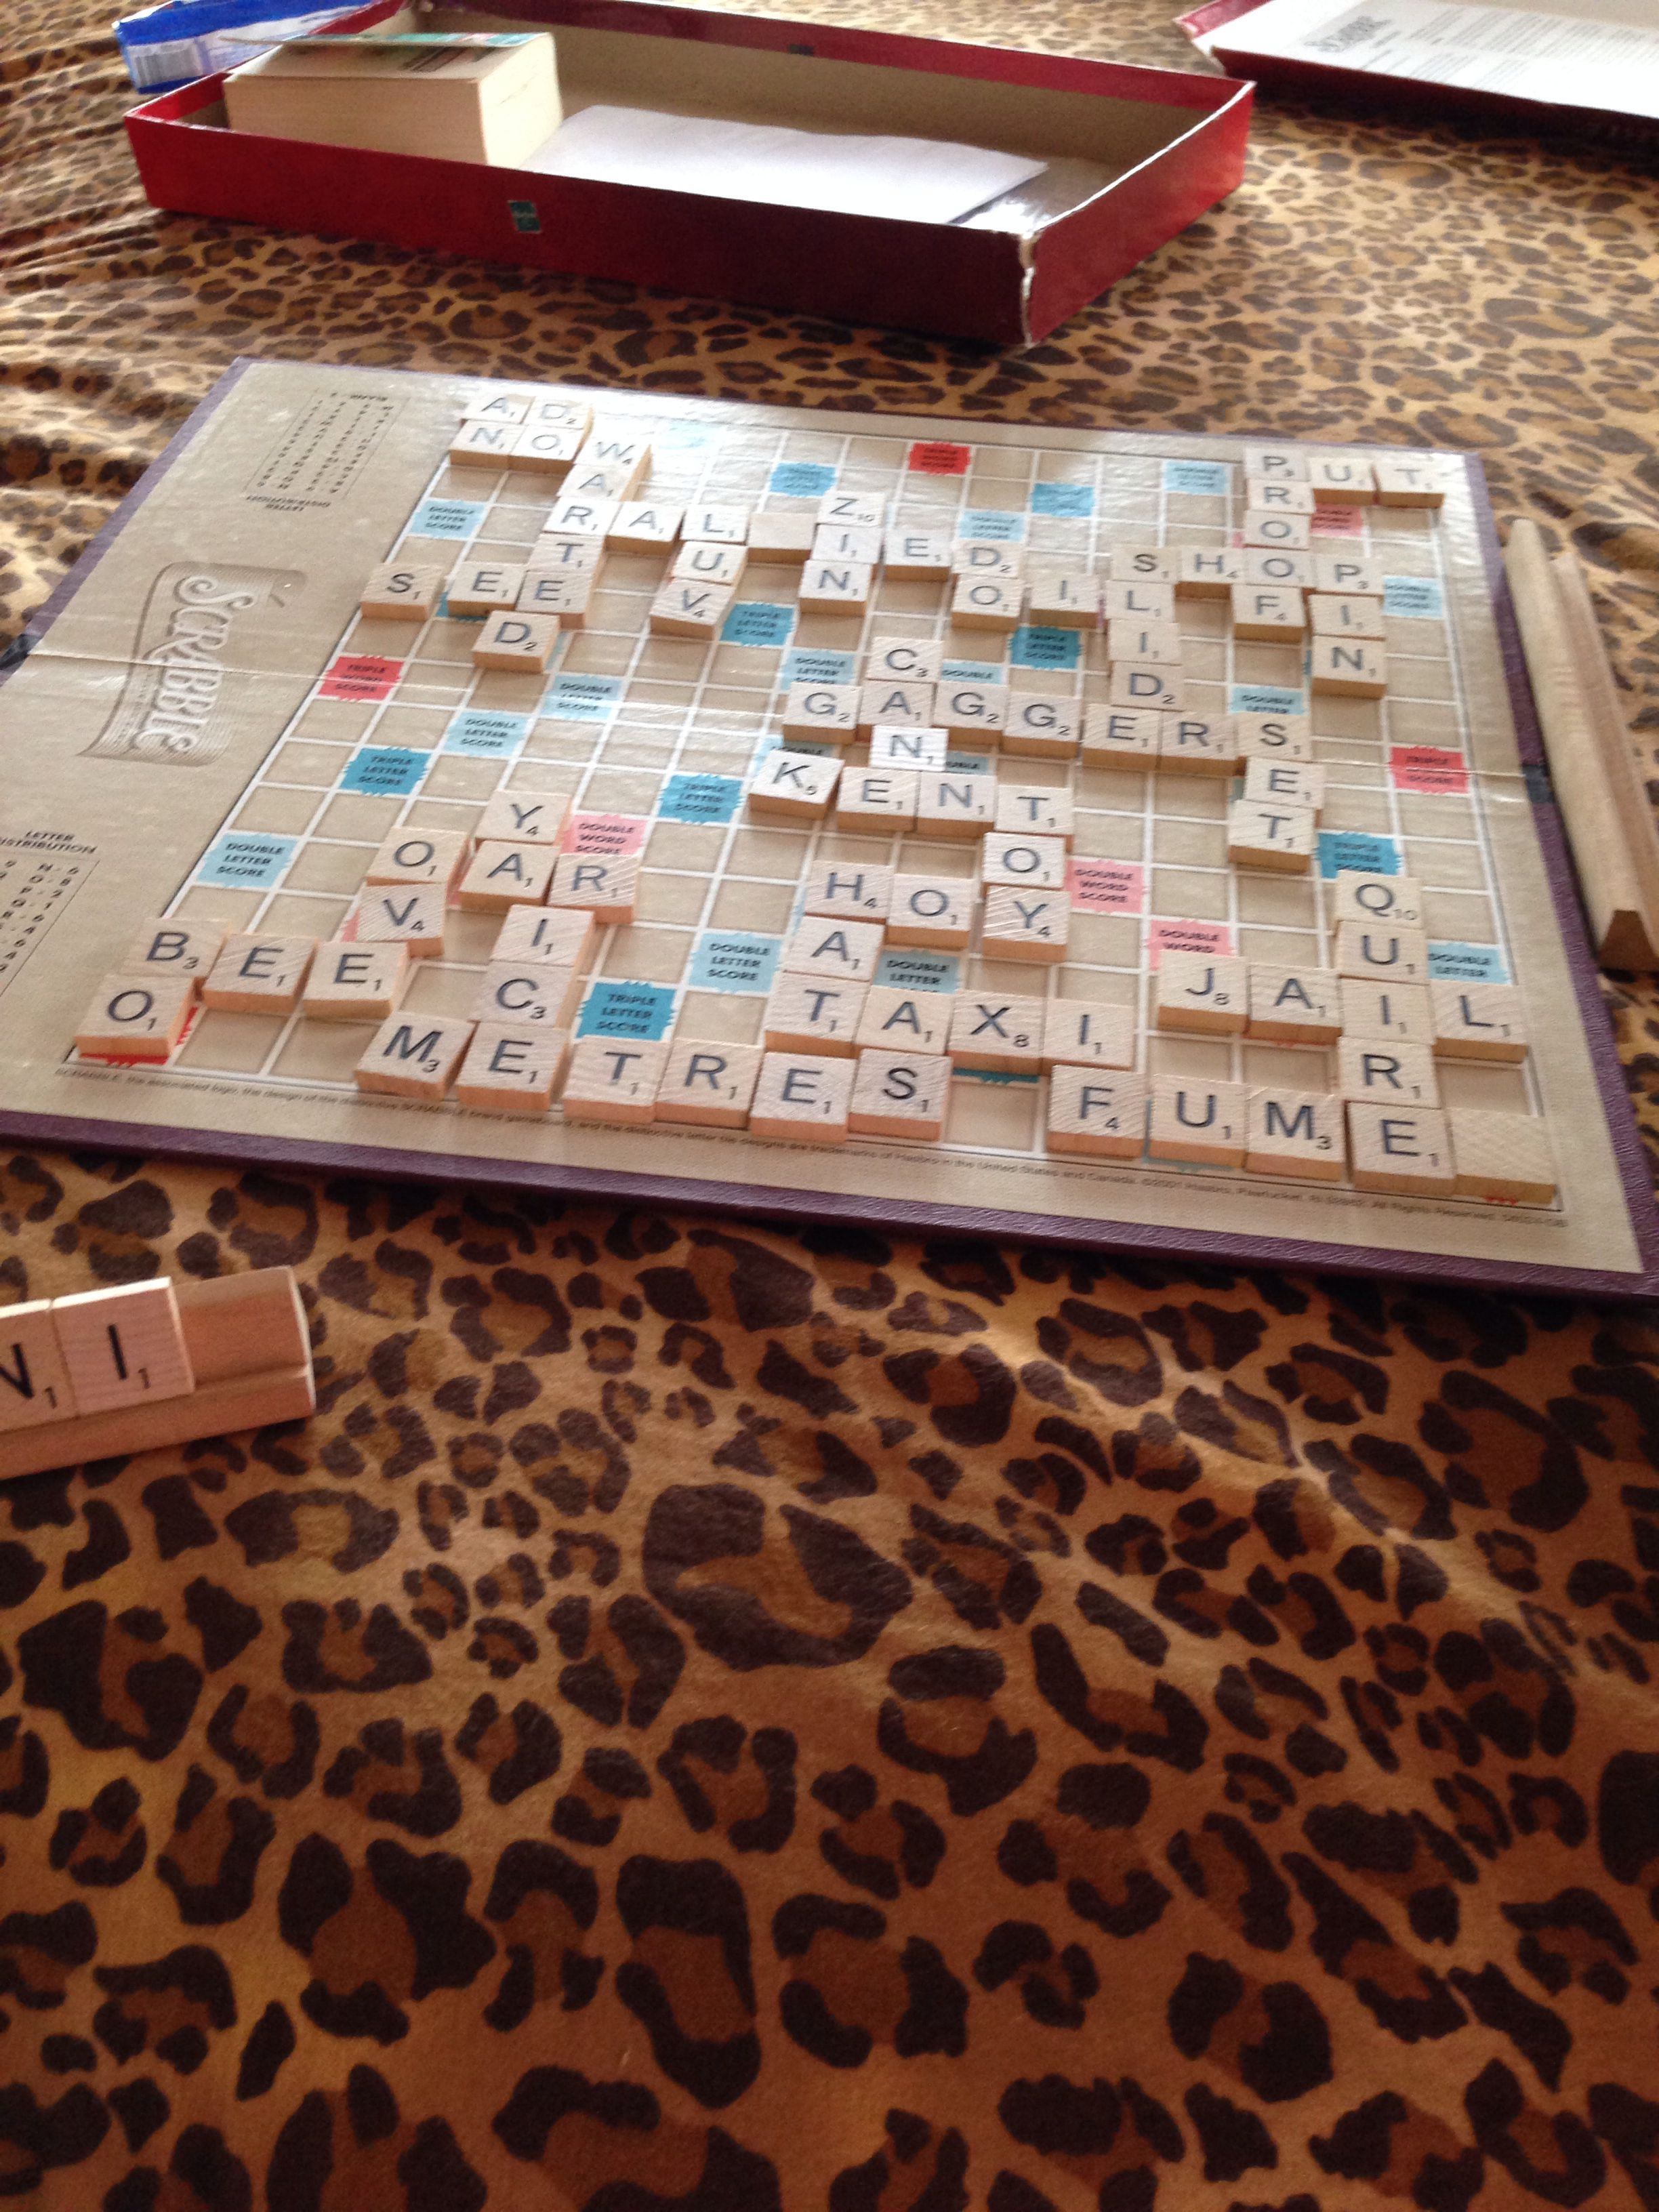 Scrabble Is A Learning Tool That Can Be Used To Build